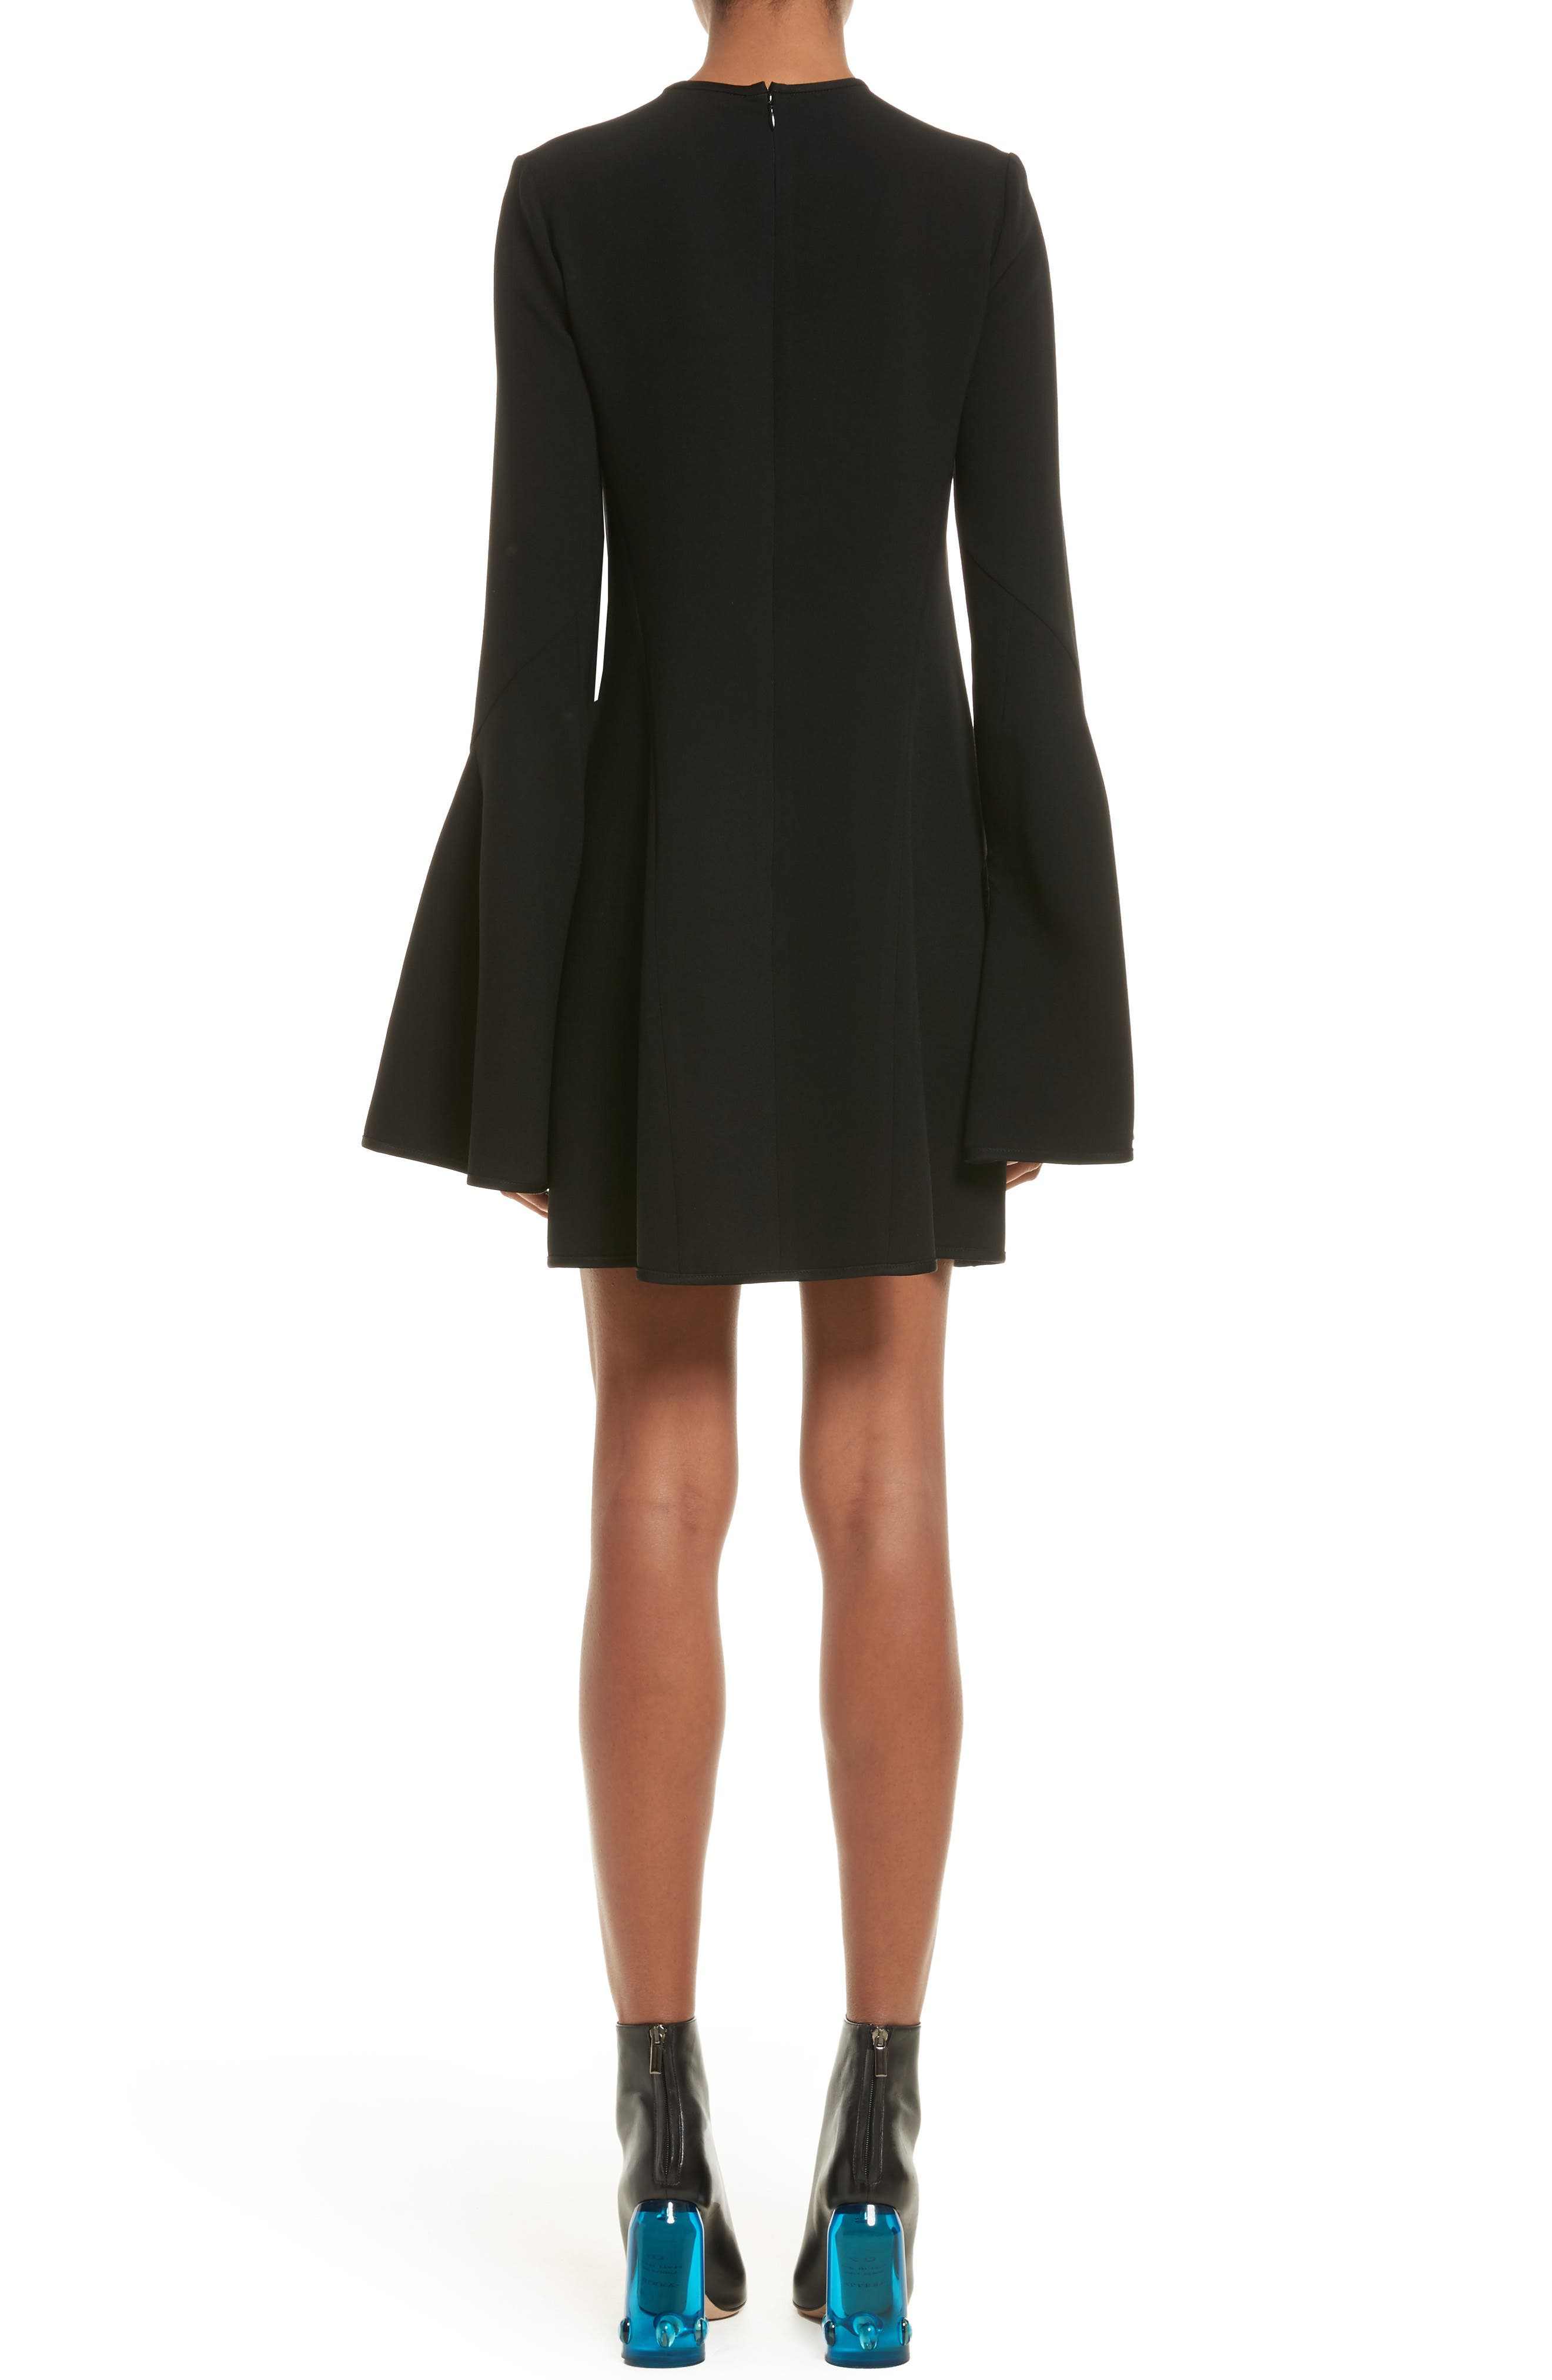 Preacher Satin Crepe Dress,                             Alternate thumbnail 2, color,